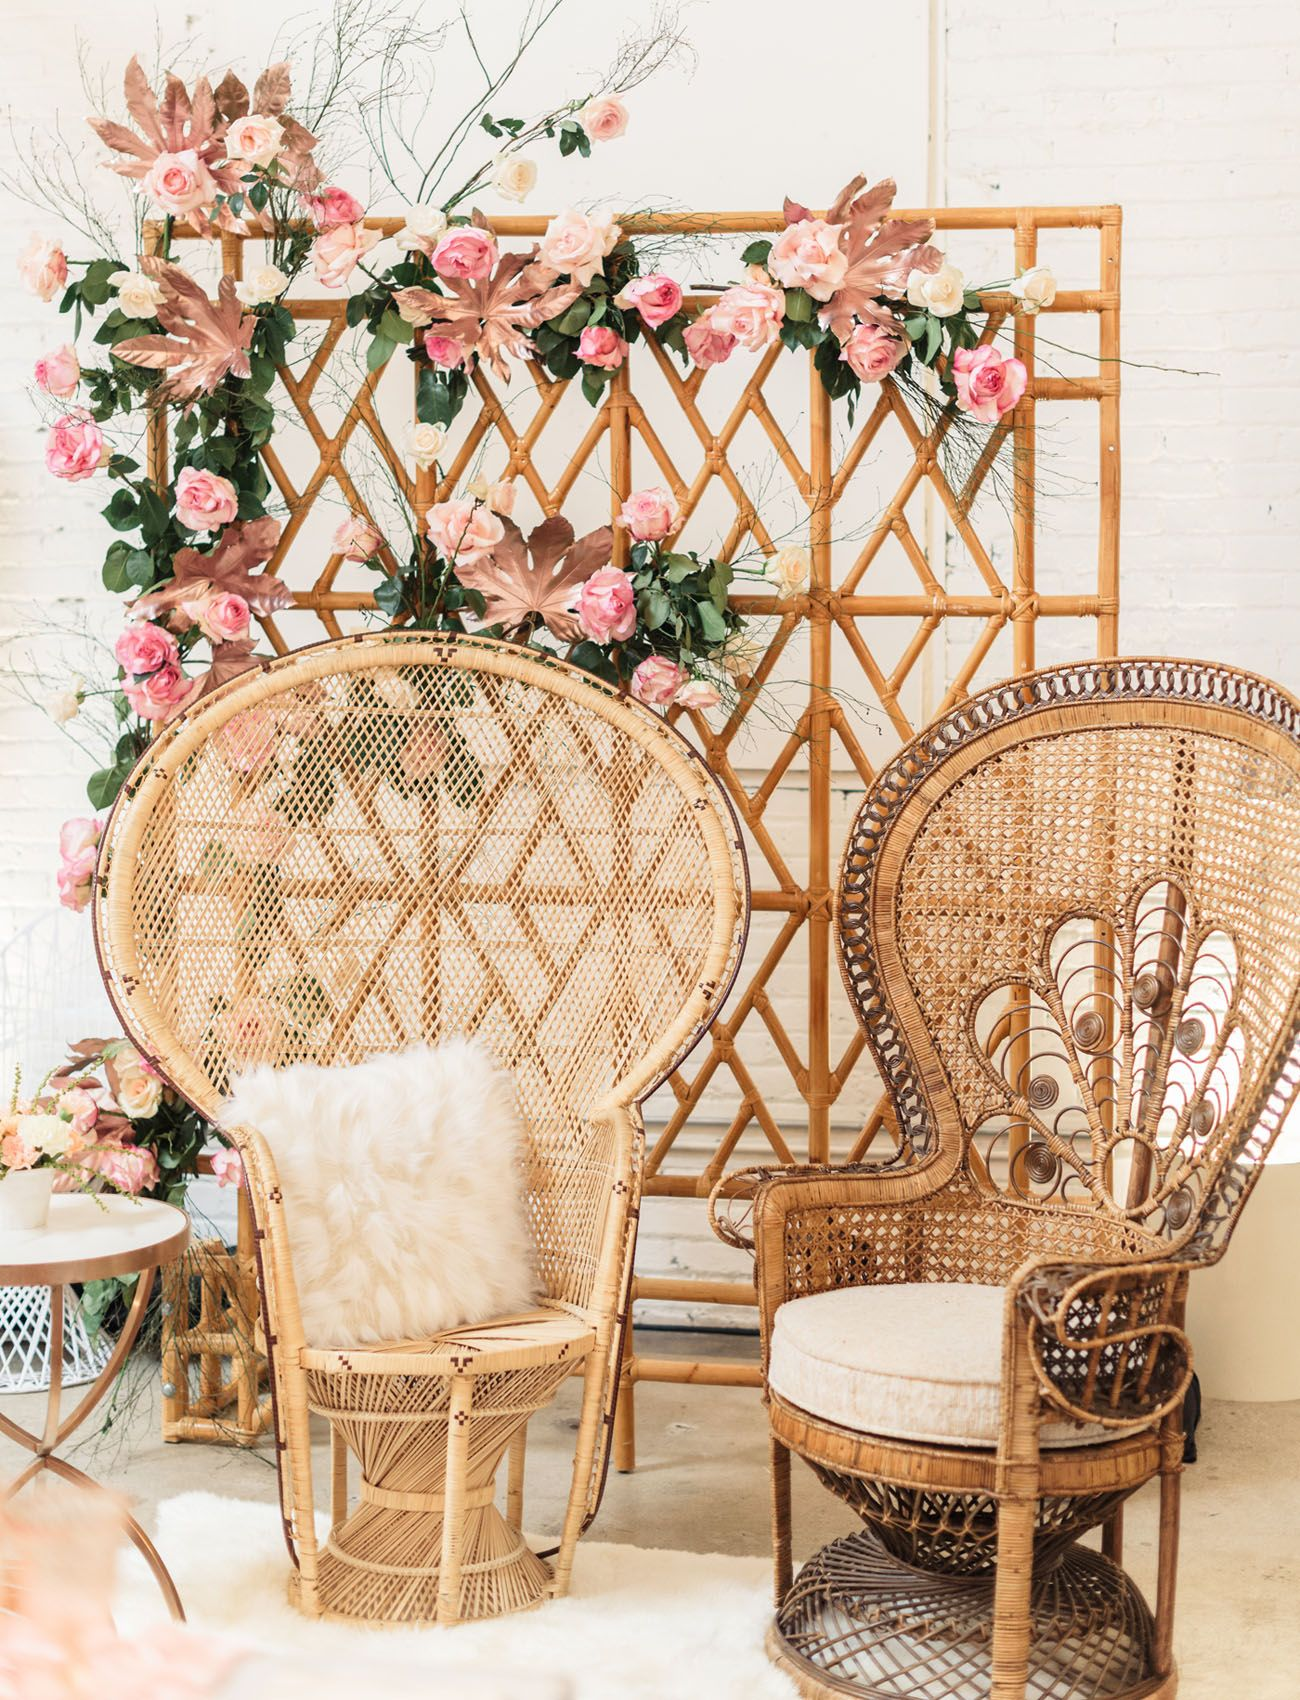 Floral Peacock Chairs via greenweddingshoes